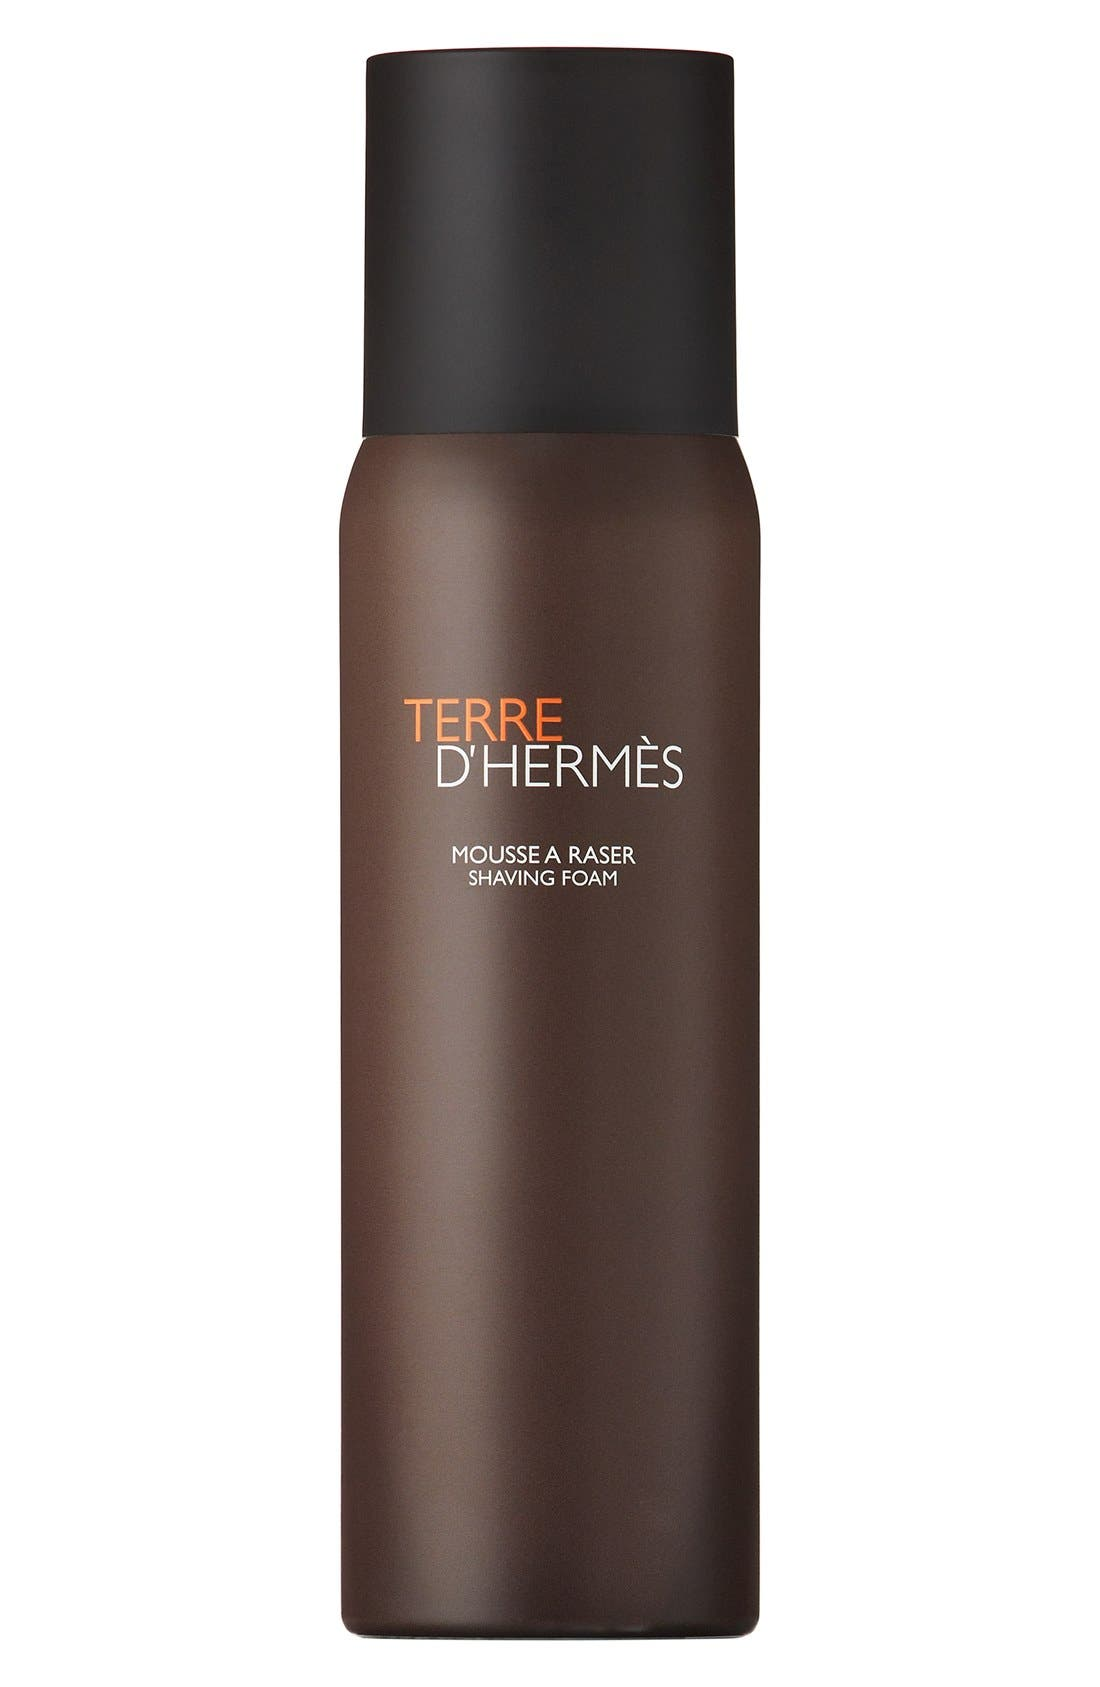 Terre d'Hermès - Shaving foam,                         Main,                         color, 000